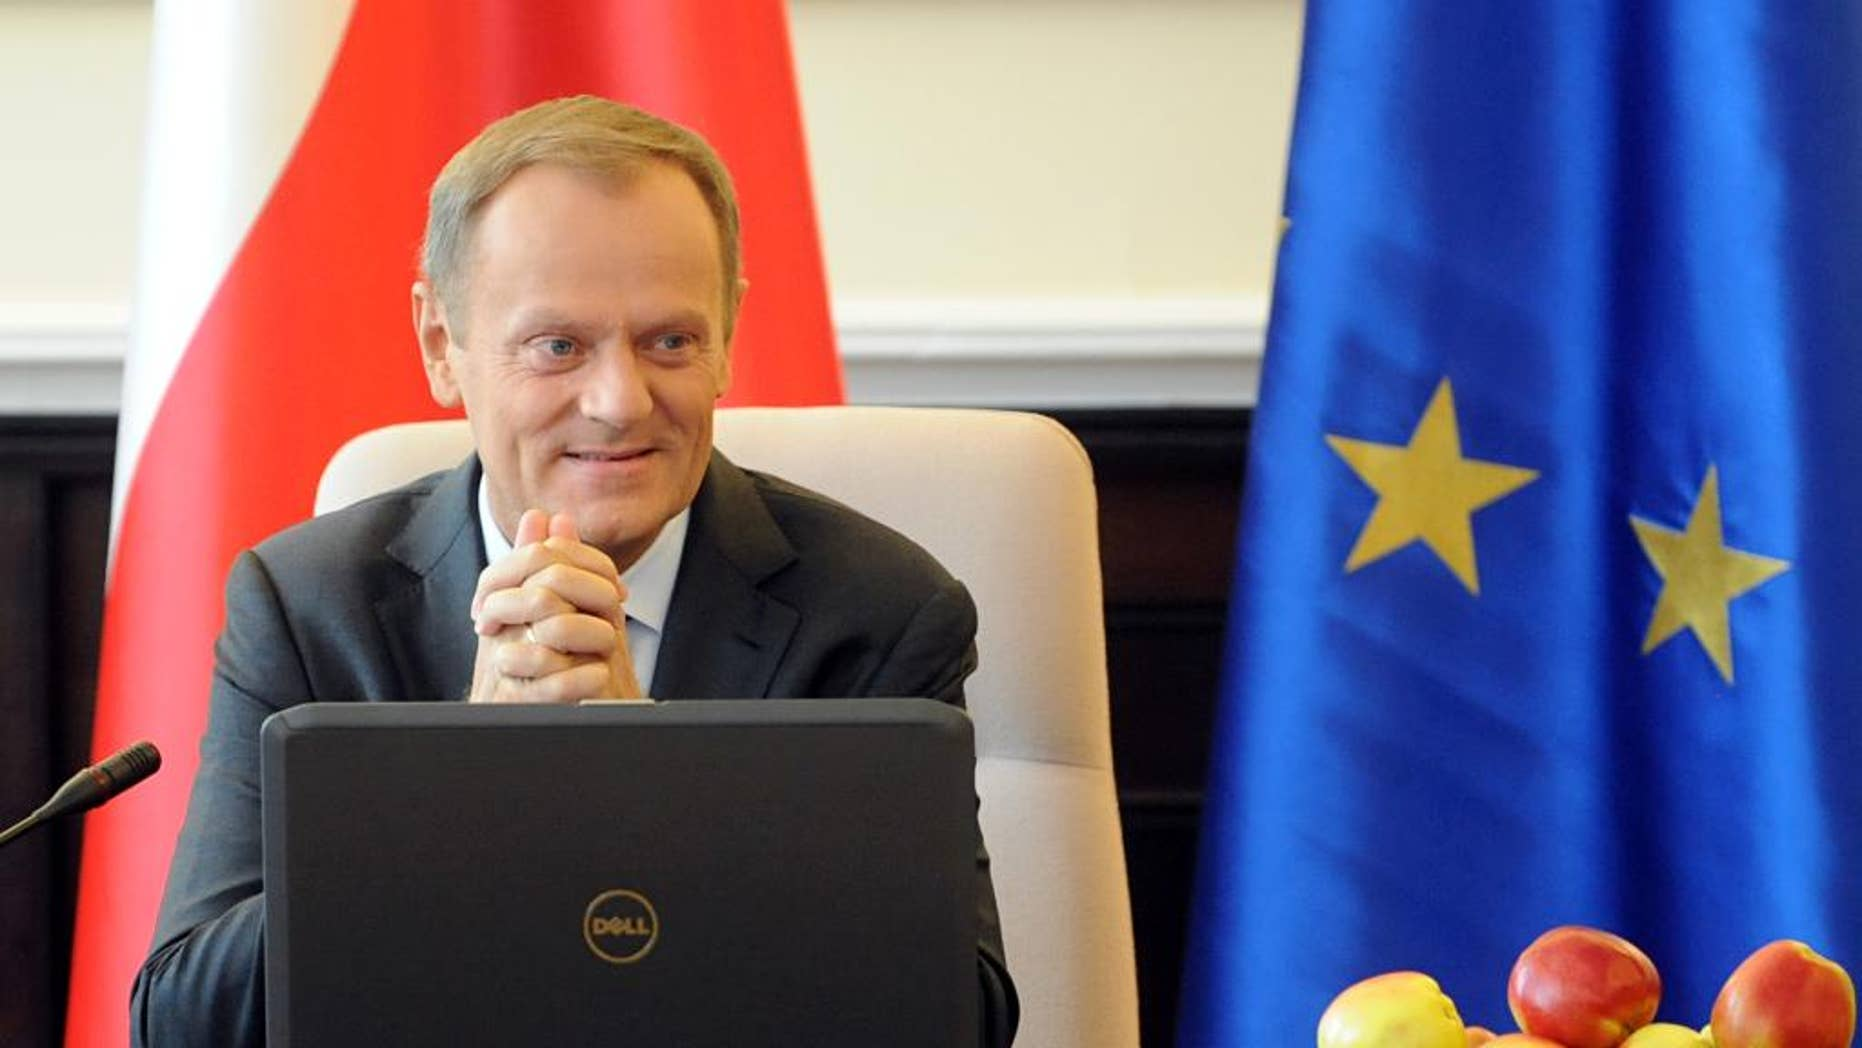 Polish Prime Minister Donald Tusk  opens a government meeting in Warsaw, Poland, Tuesday, Sept. 2, 2014. Tusk was chosen by EU leaders  to be the next president of the European Council.   (AP Photo/Alik Keplicz)